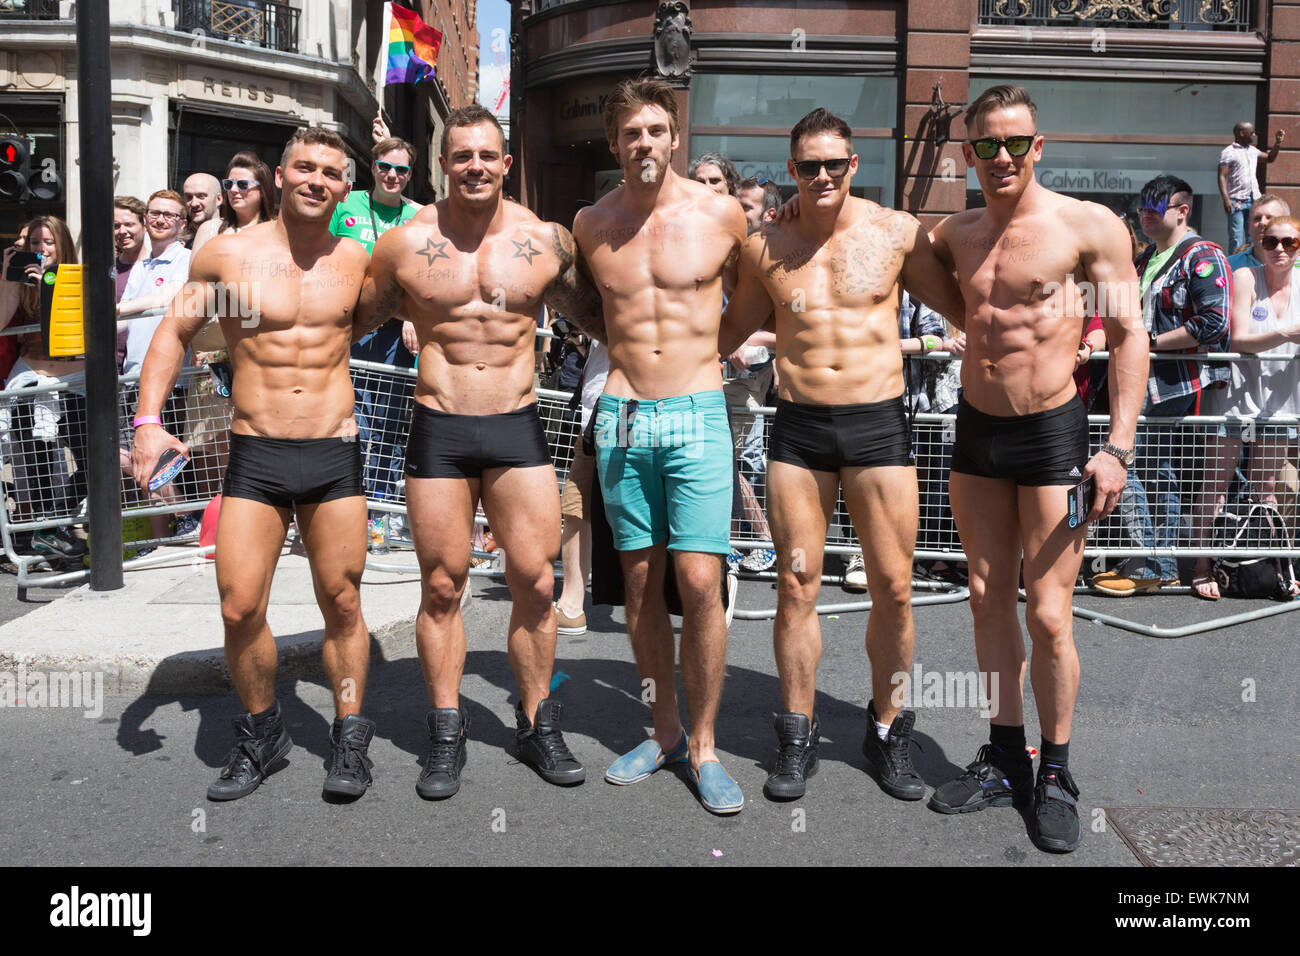 from Boone gay london man